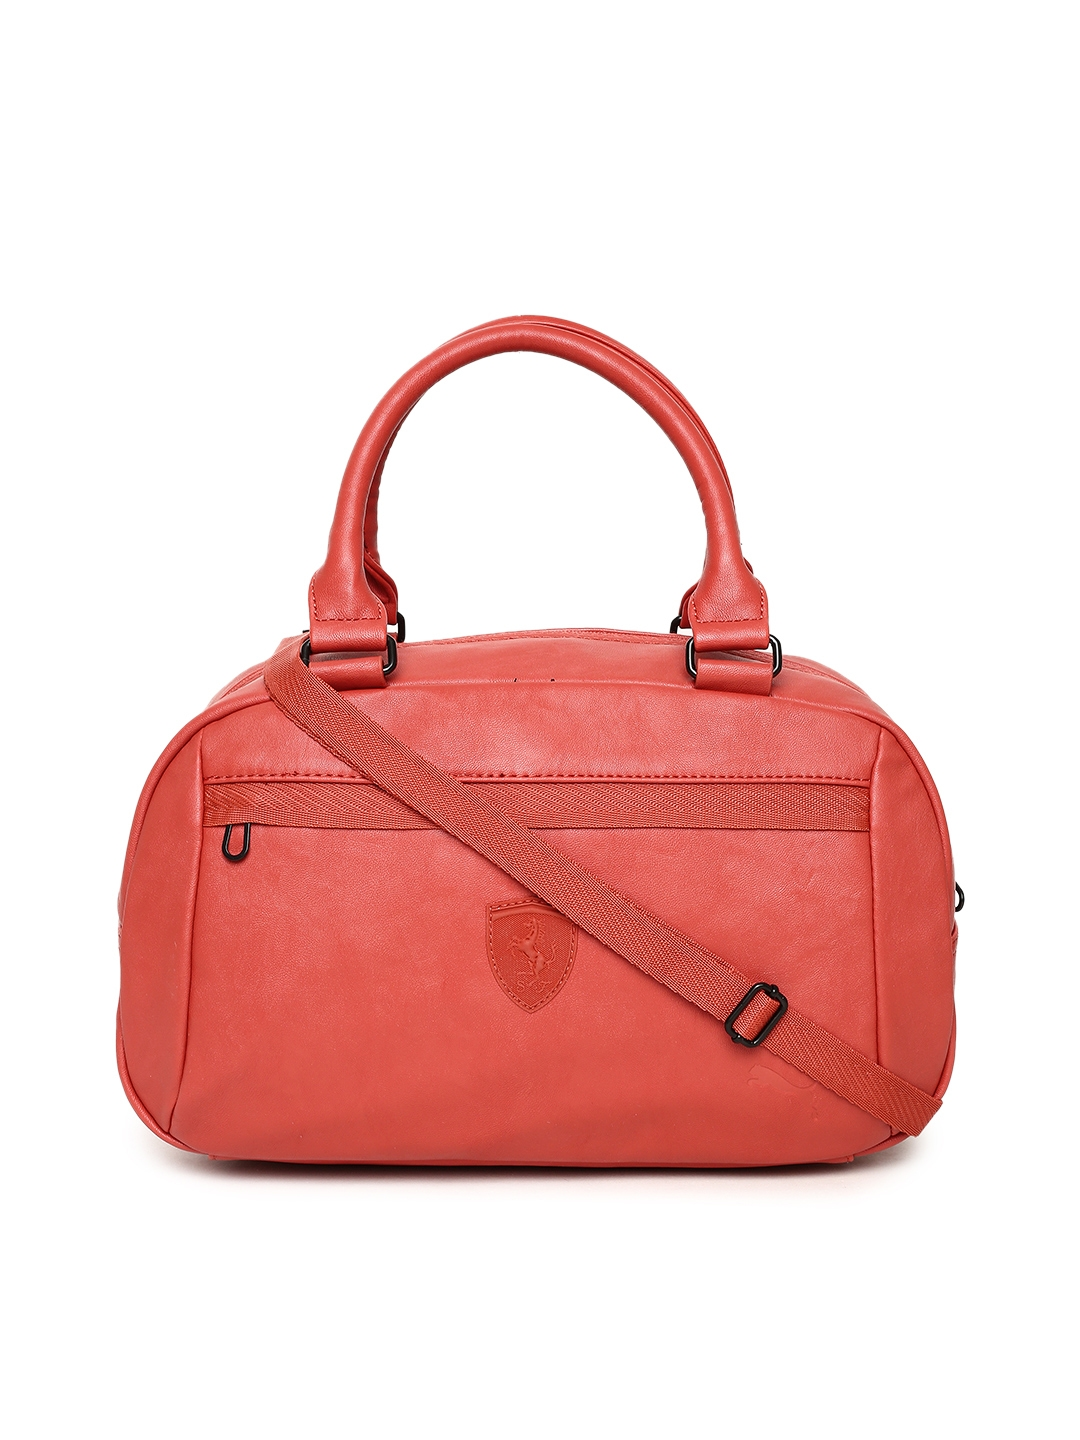 0fc39bff68 Buy Puma Red Scuderia Ferrari LS Handbag - Handbags for Women ...